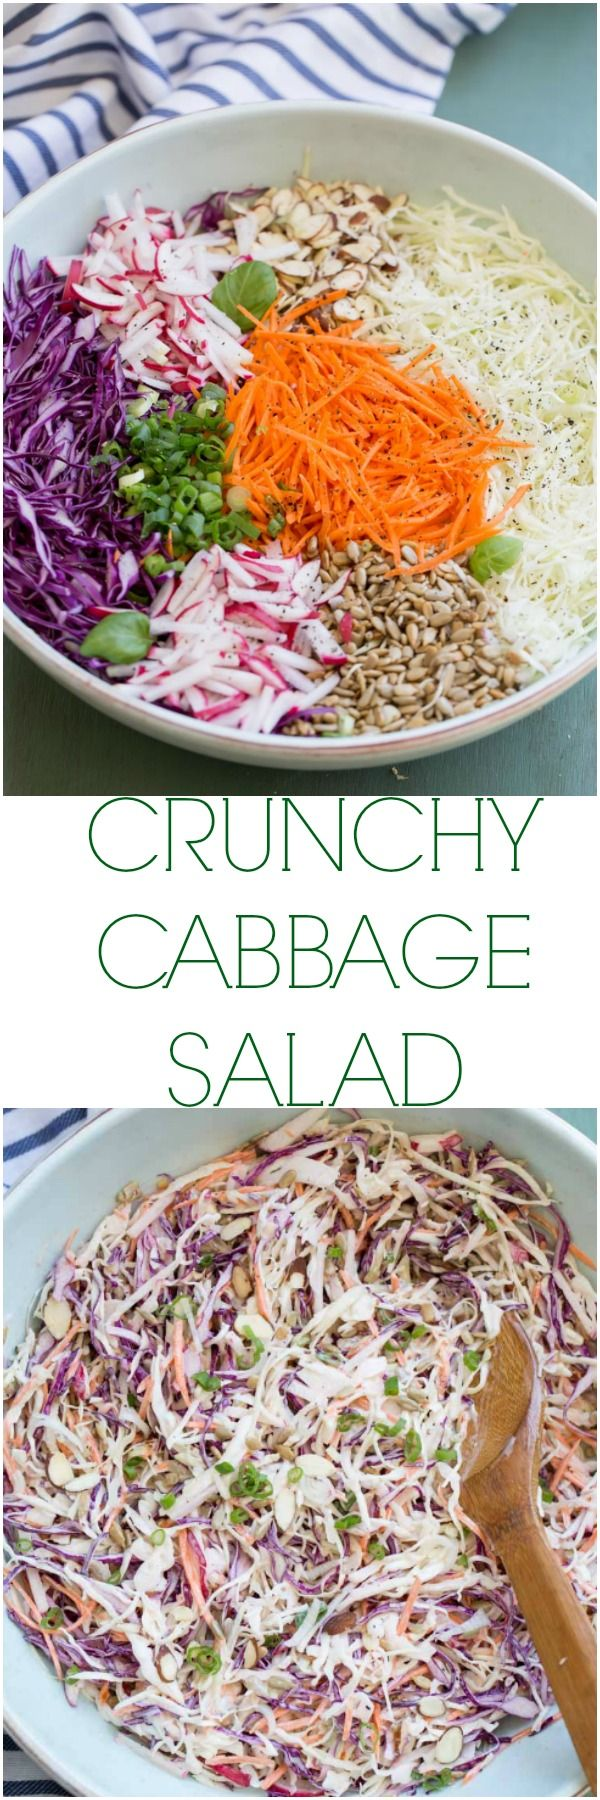 Quick easy cabbage salad recipes